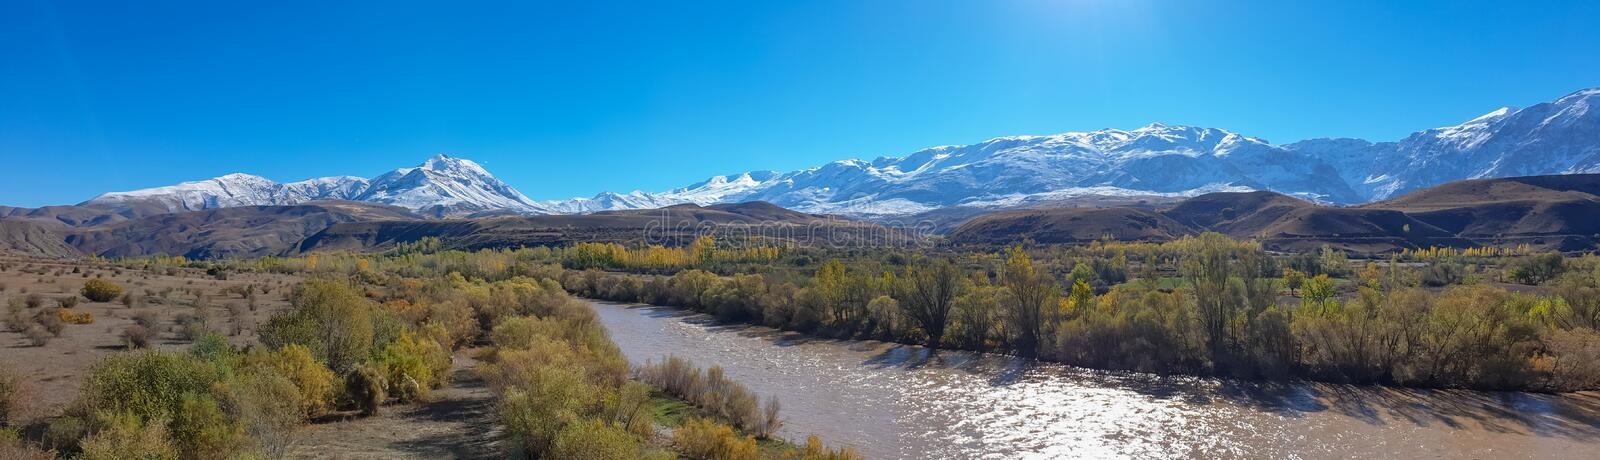 Panoramic view of a valley with snow capped mountains and River Euphrates near Erzincan, Turkey royalty free stock photography